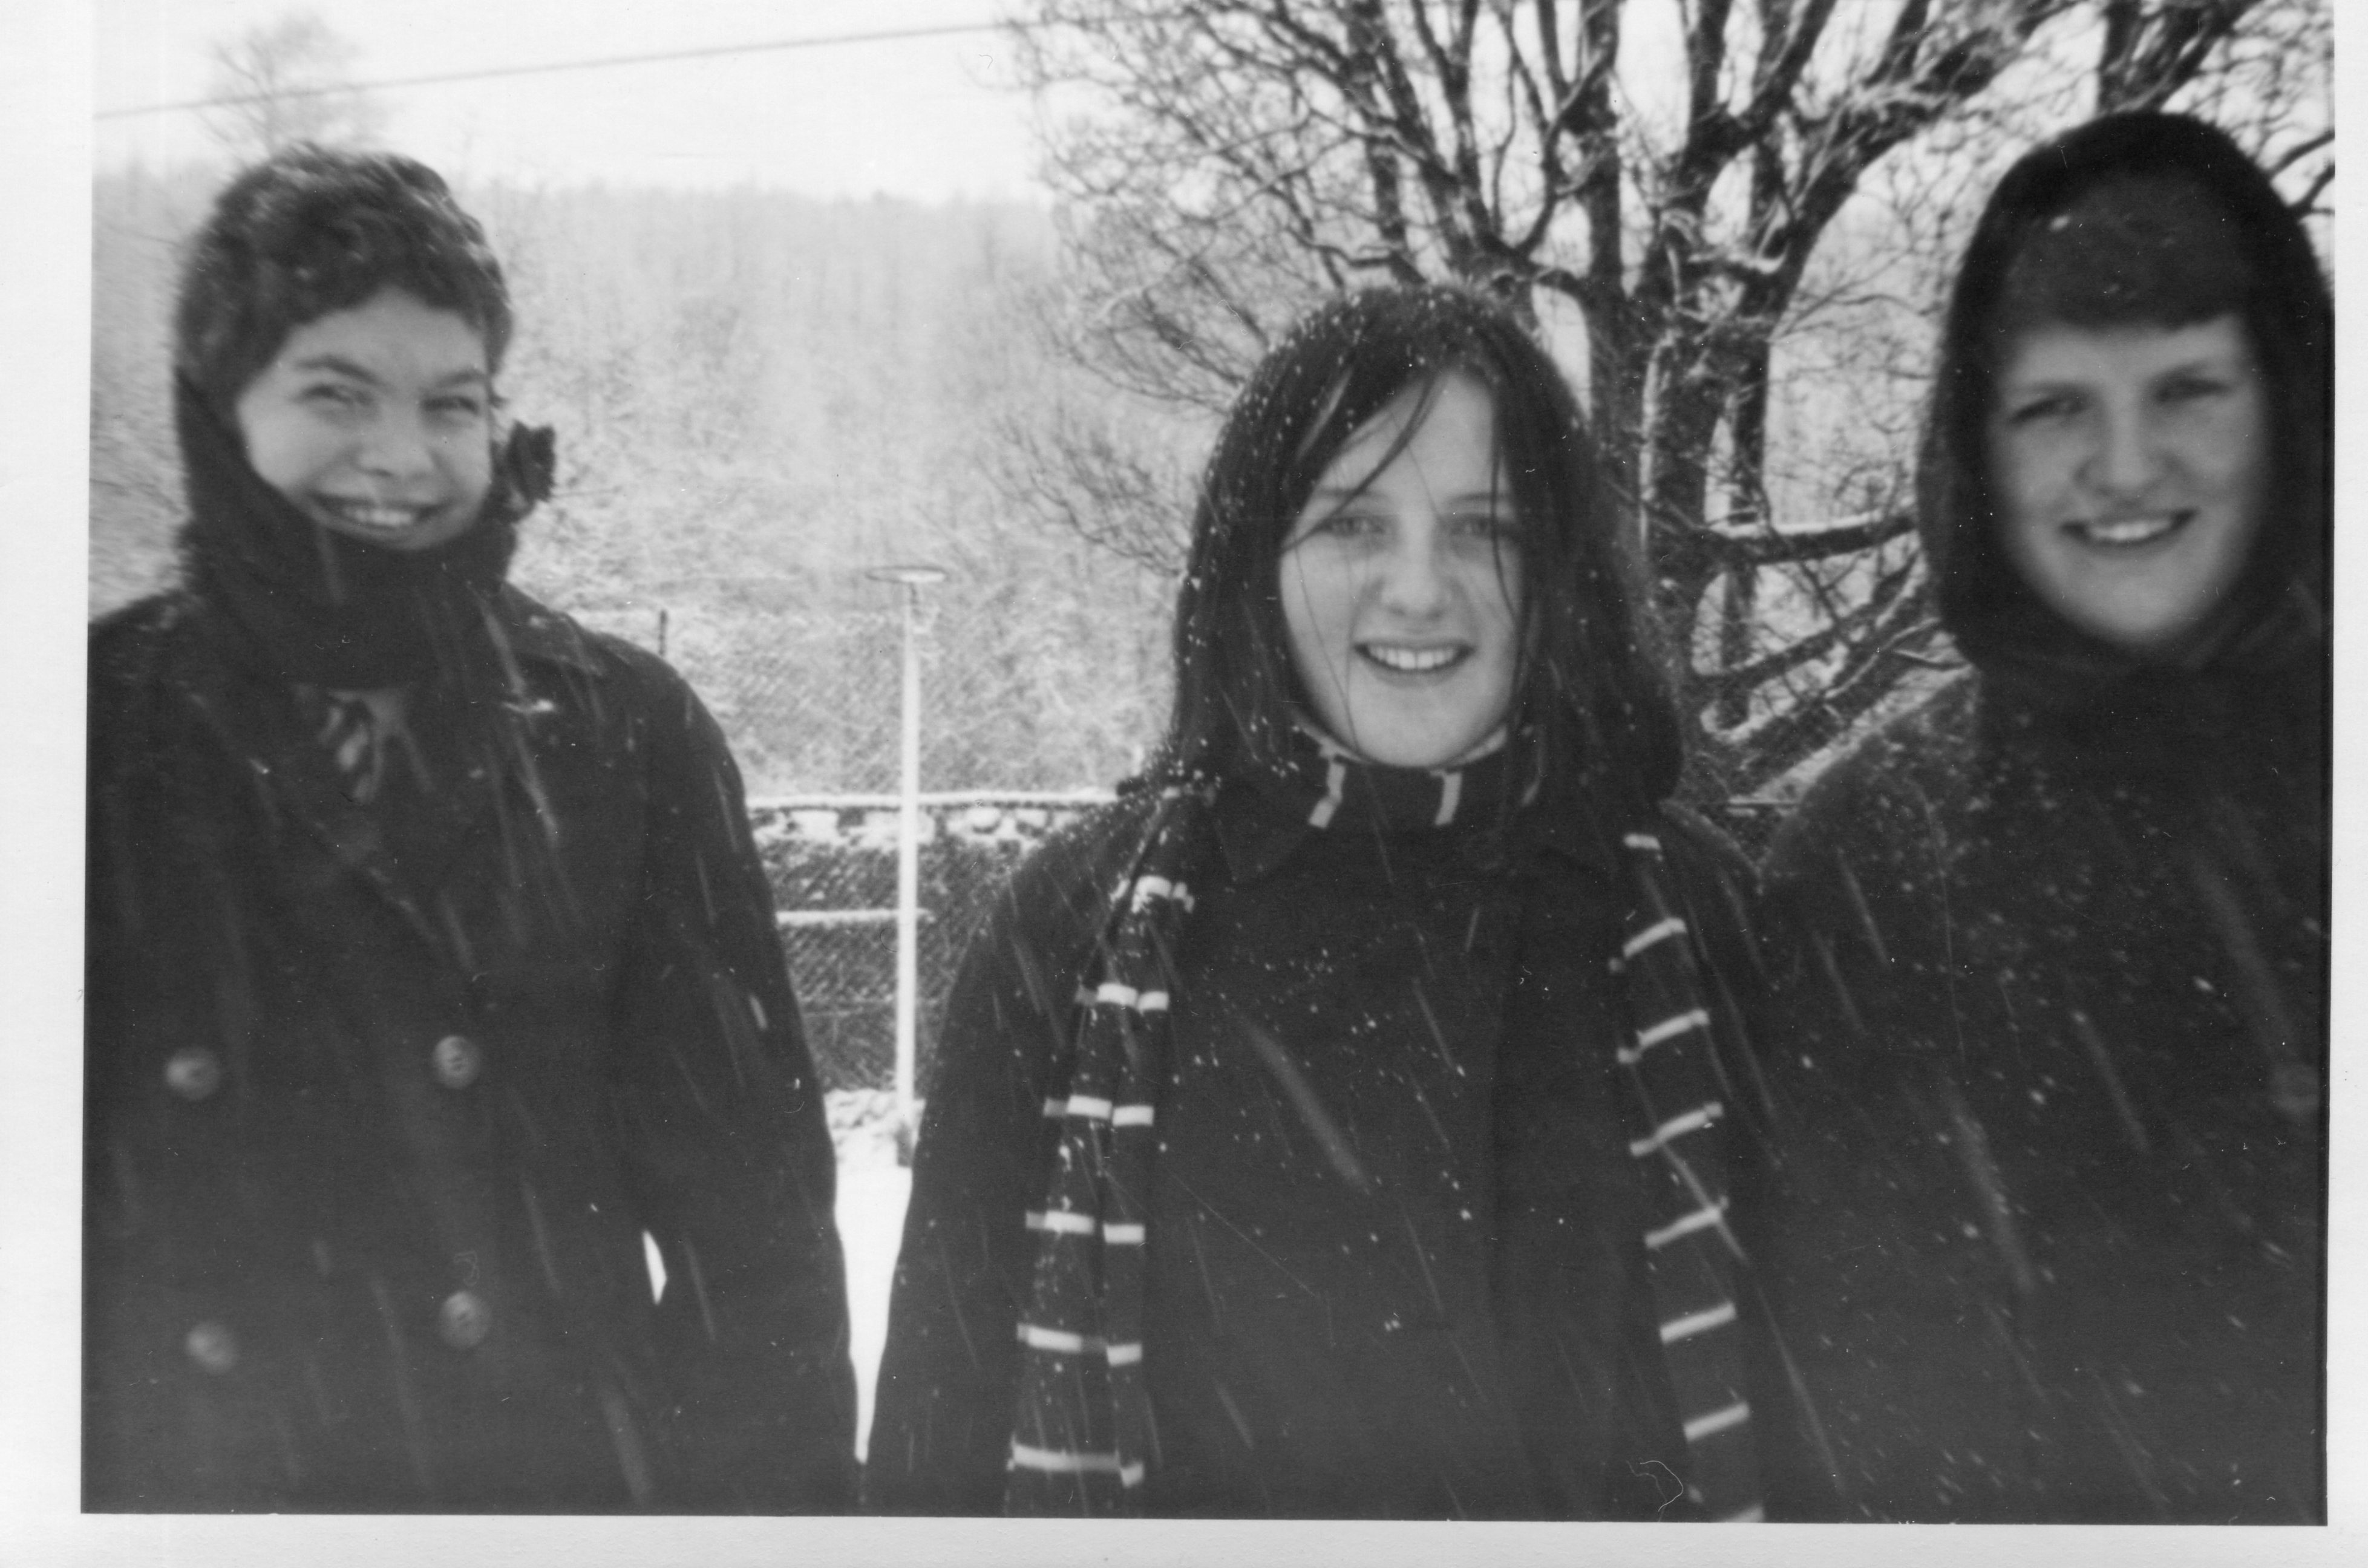 Winter photograph of three girls, circa 1960